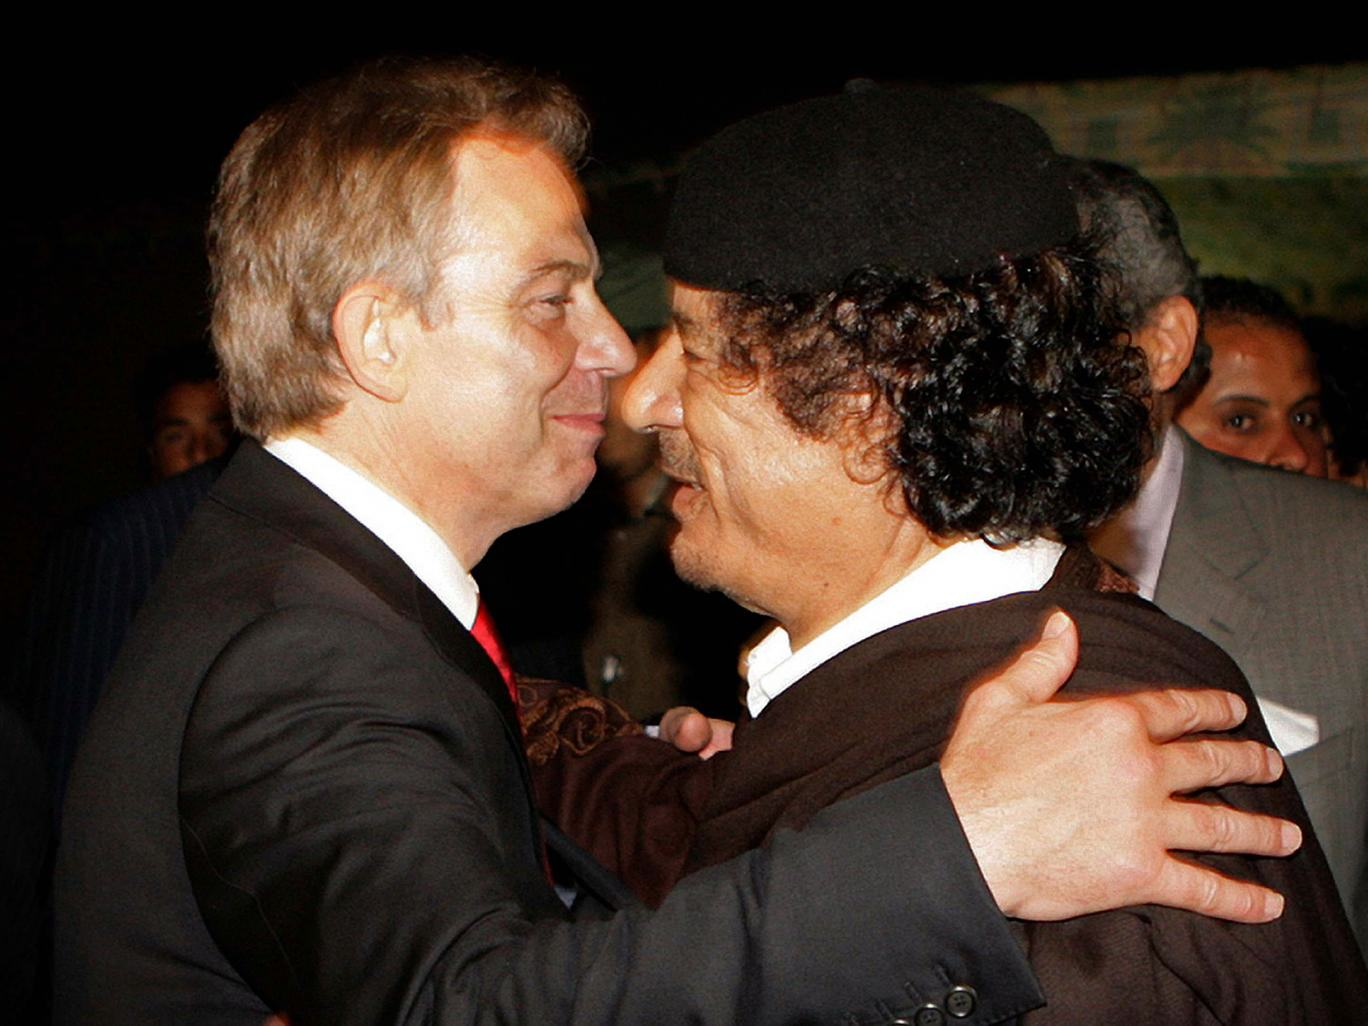 UNILAD blair gaddafi4 Leaked Email Shows Tony Blair Told Gaddafi To Hide And Avoid Capture